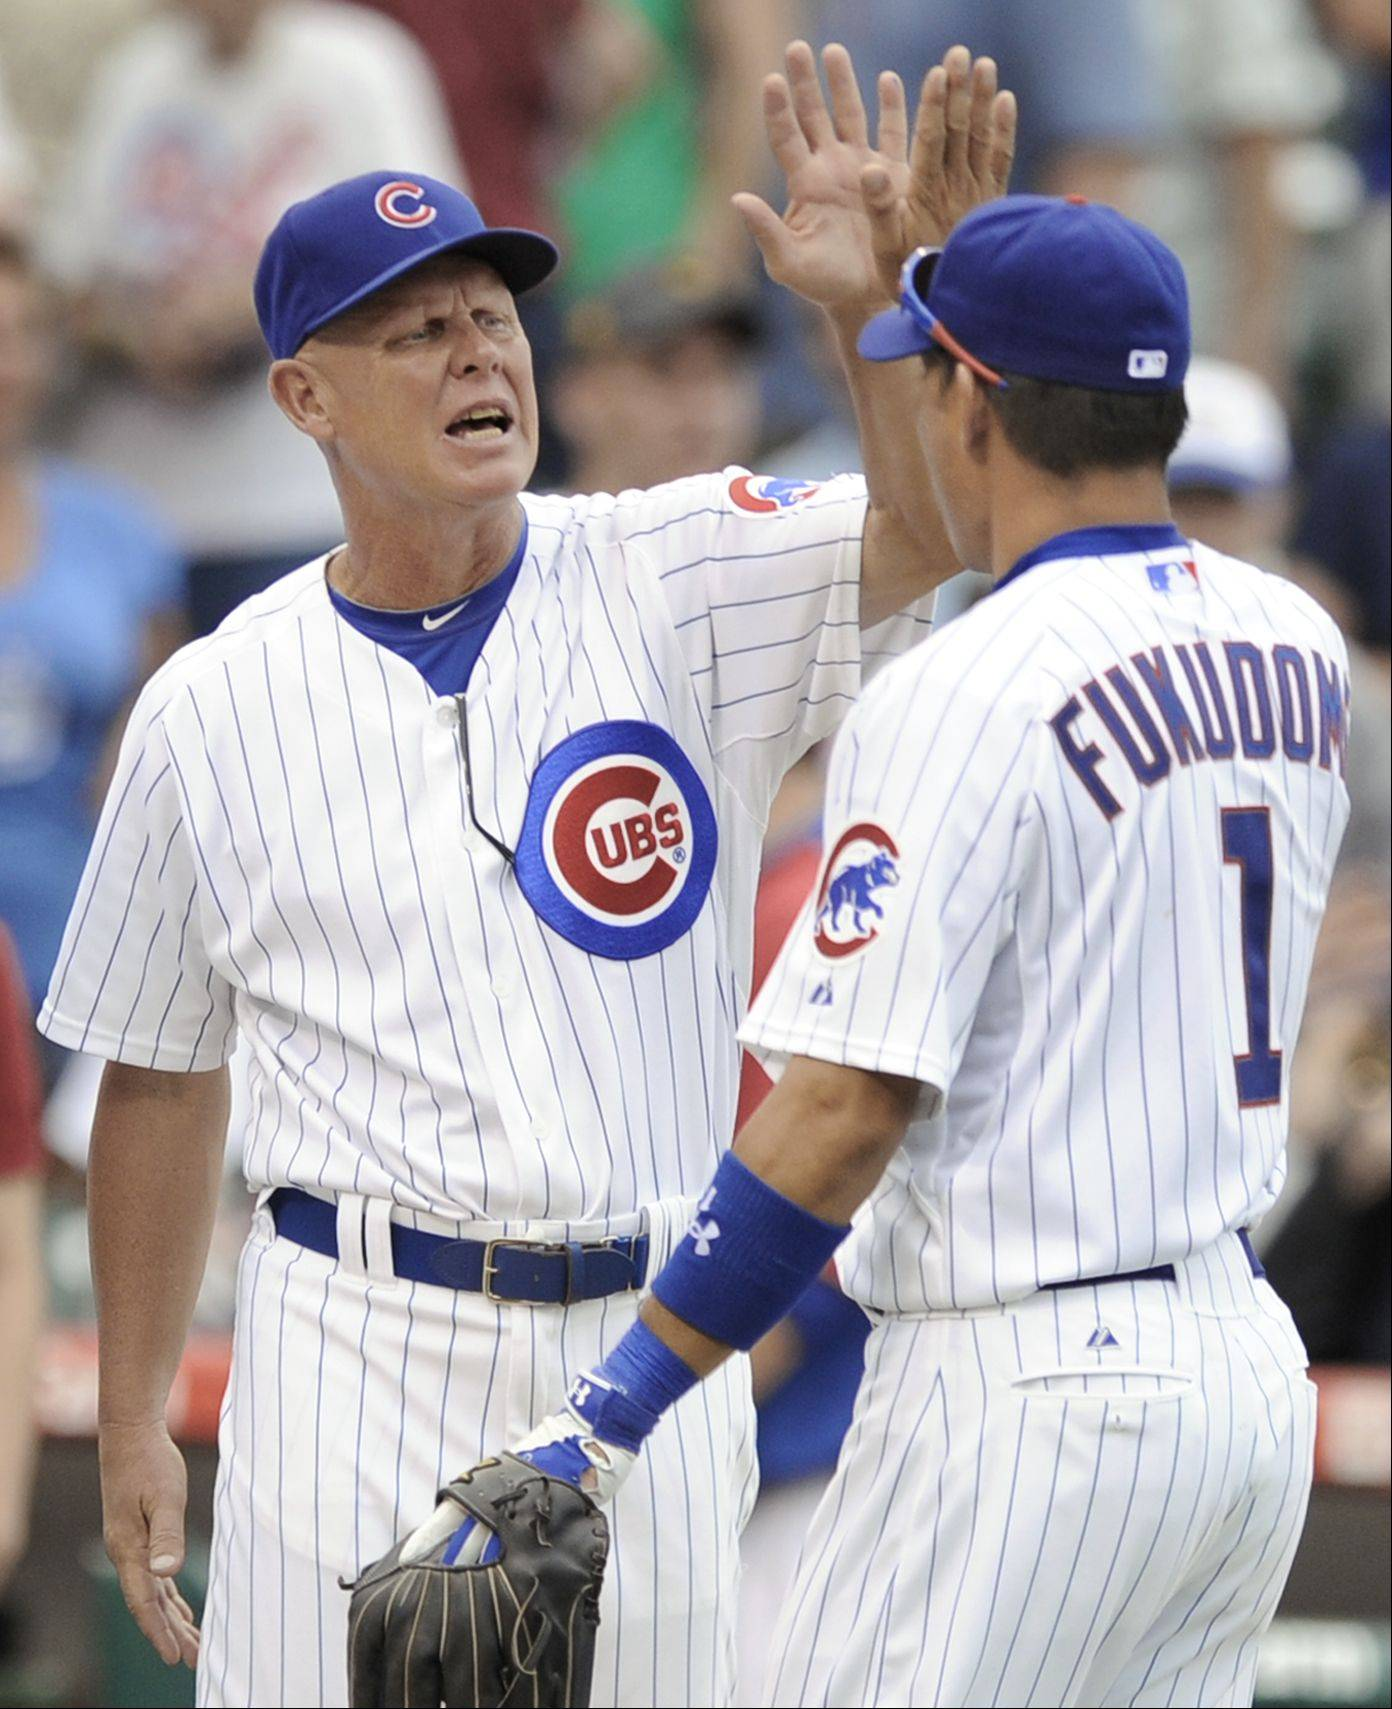 Chicago Cubs manager Mike Quade left, high-fives Kosuke Fukudome after the Cubs defeated the Pittsburgh Pirates 5-3 in a baseball game in Chicago, Wednesday, Sept. 1, 2010.